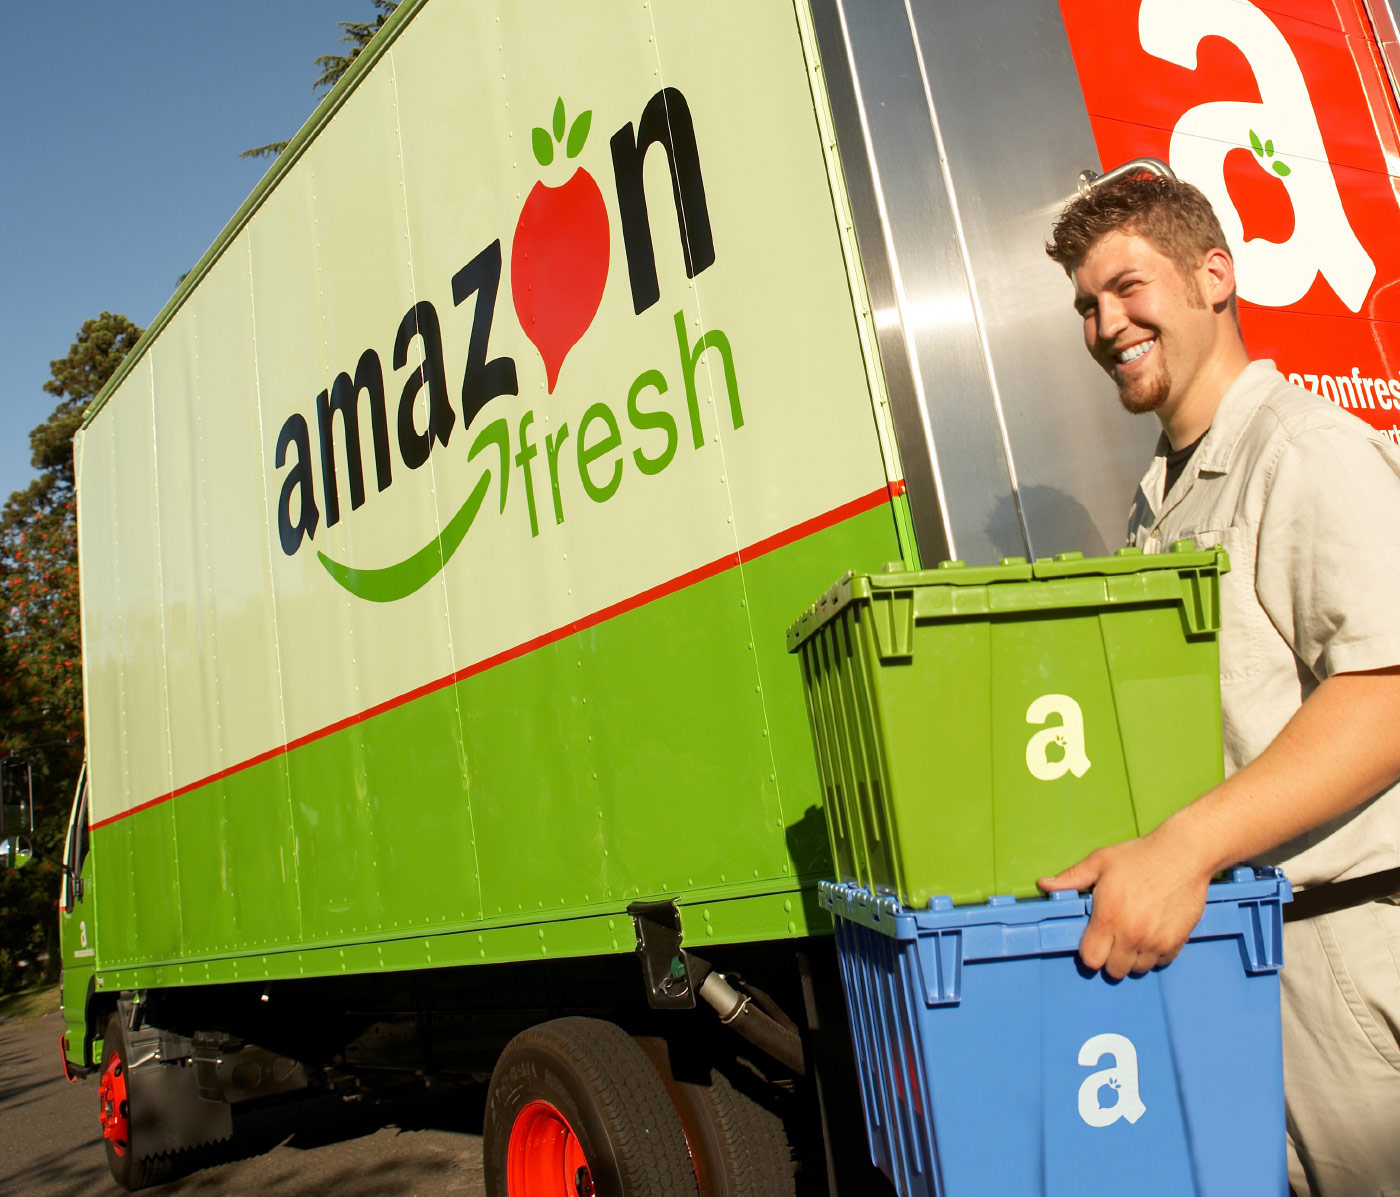 Amazon Fresh Environmental Graphics